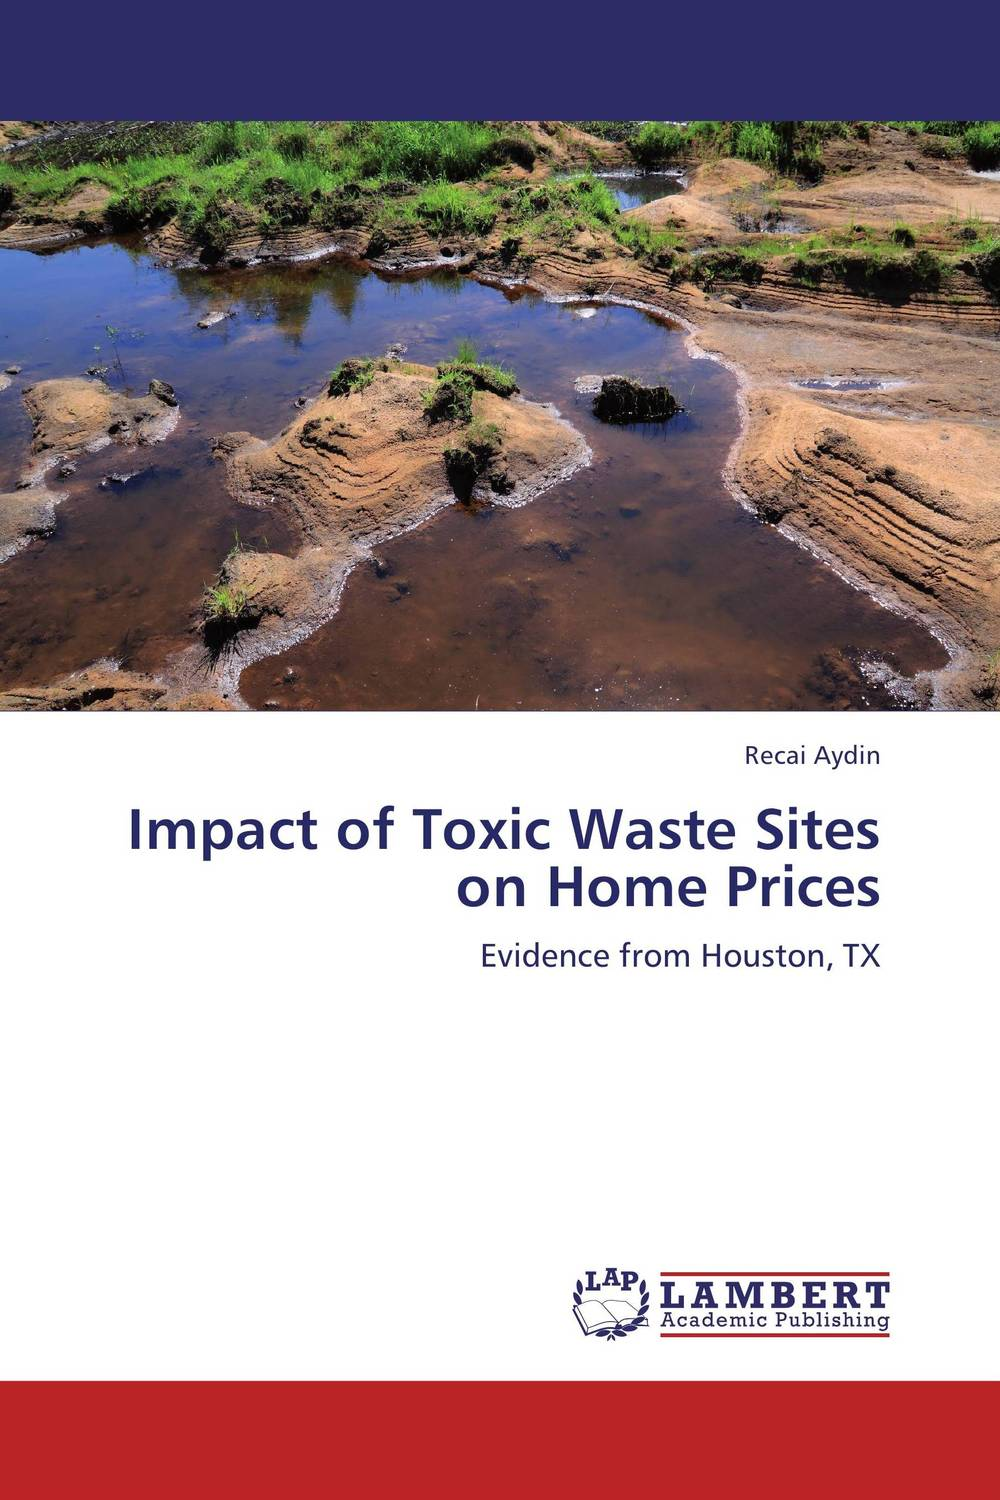 Impact of Toxic Waste Sites on Home Prices